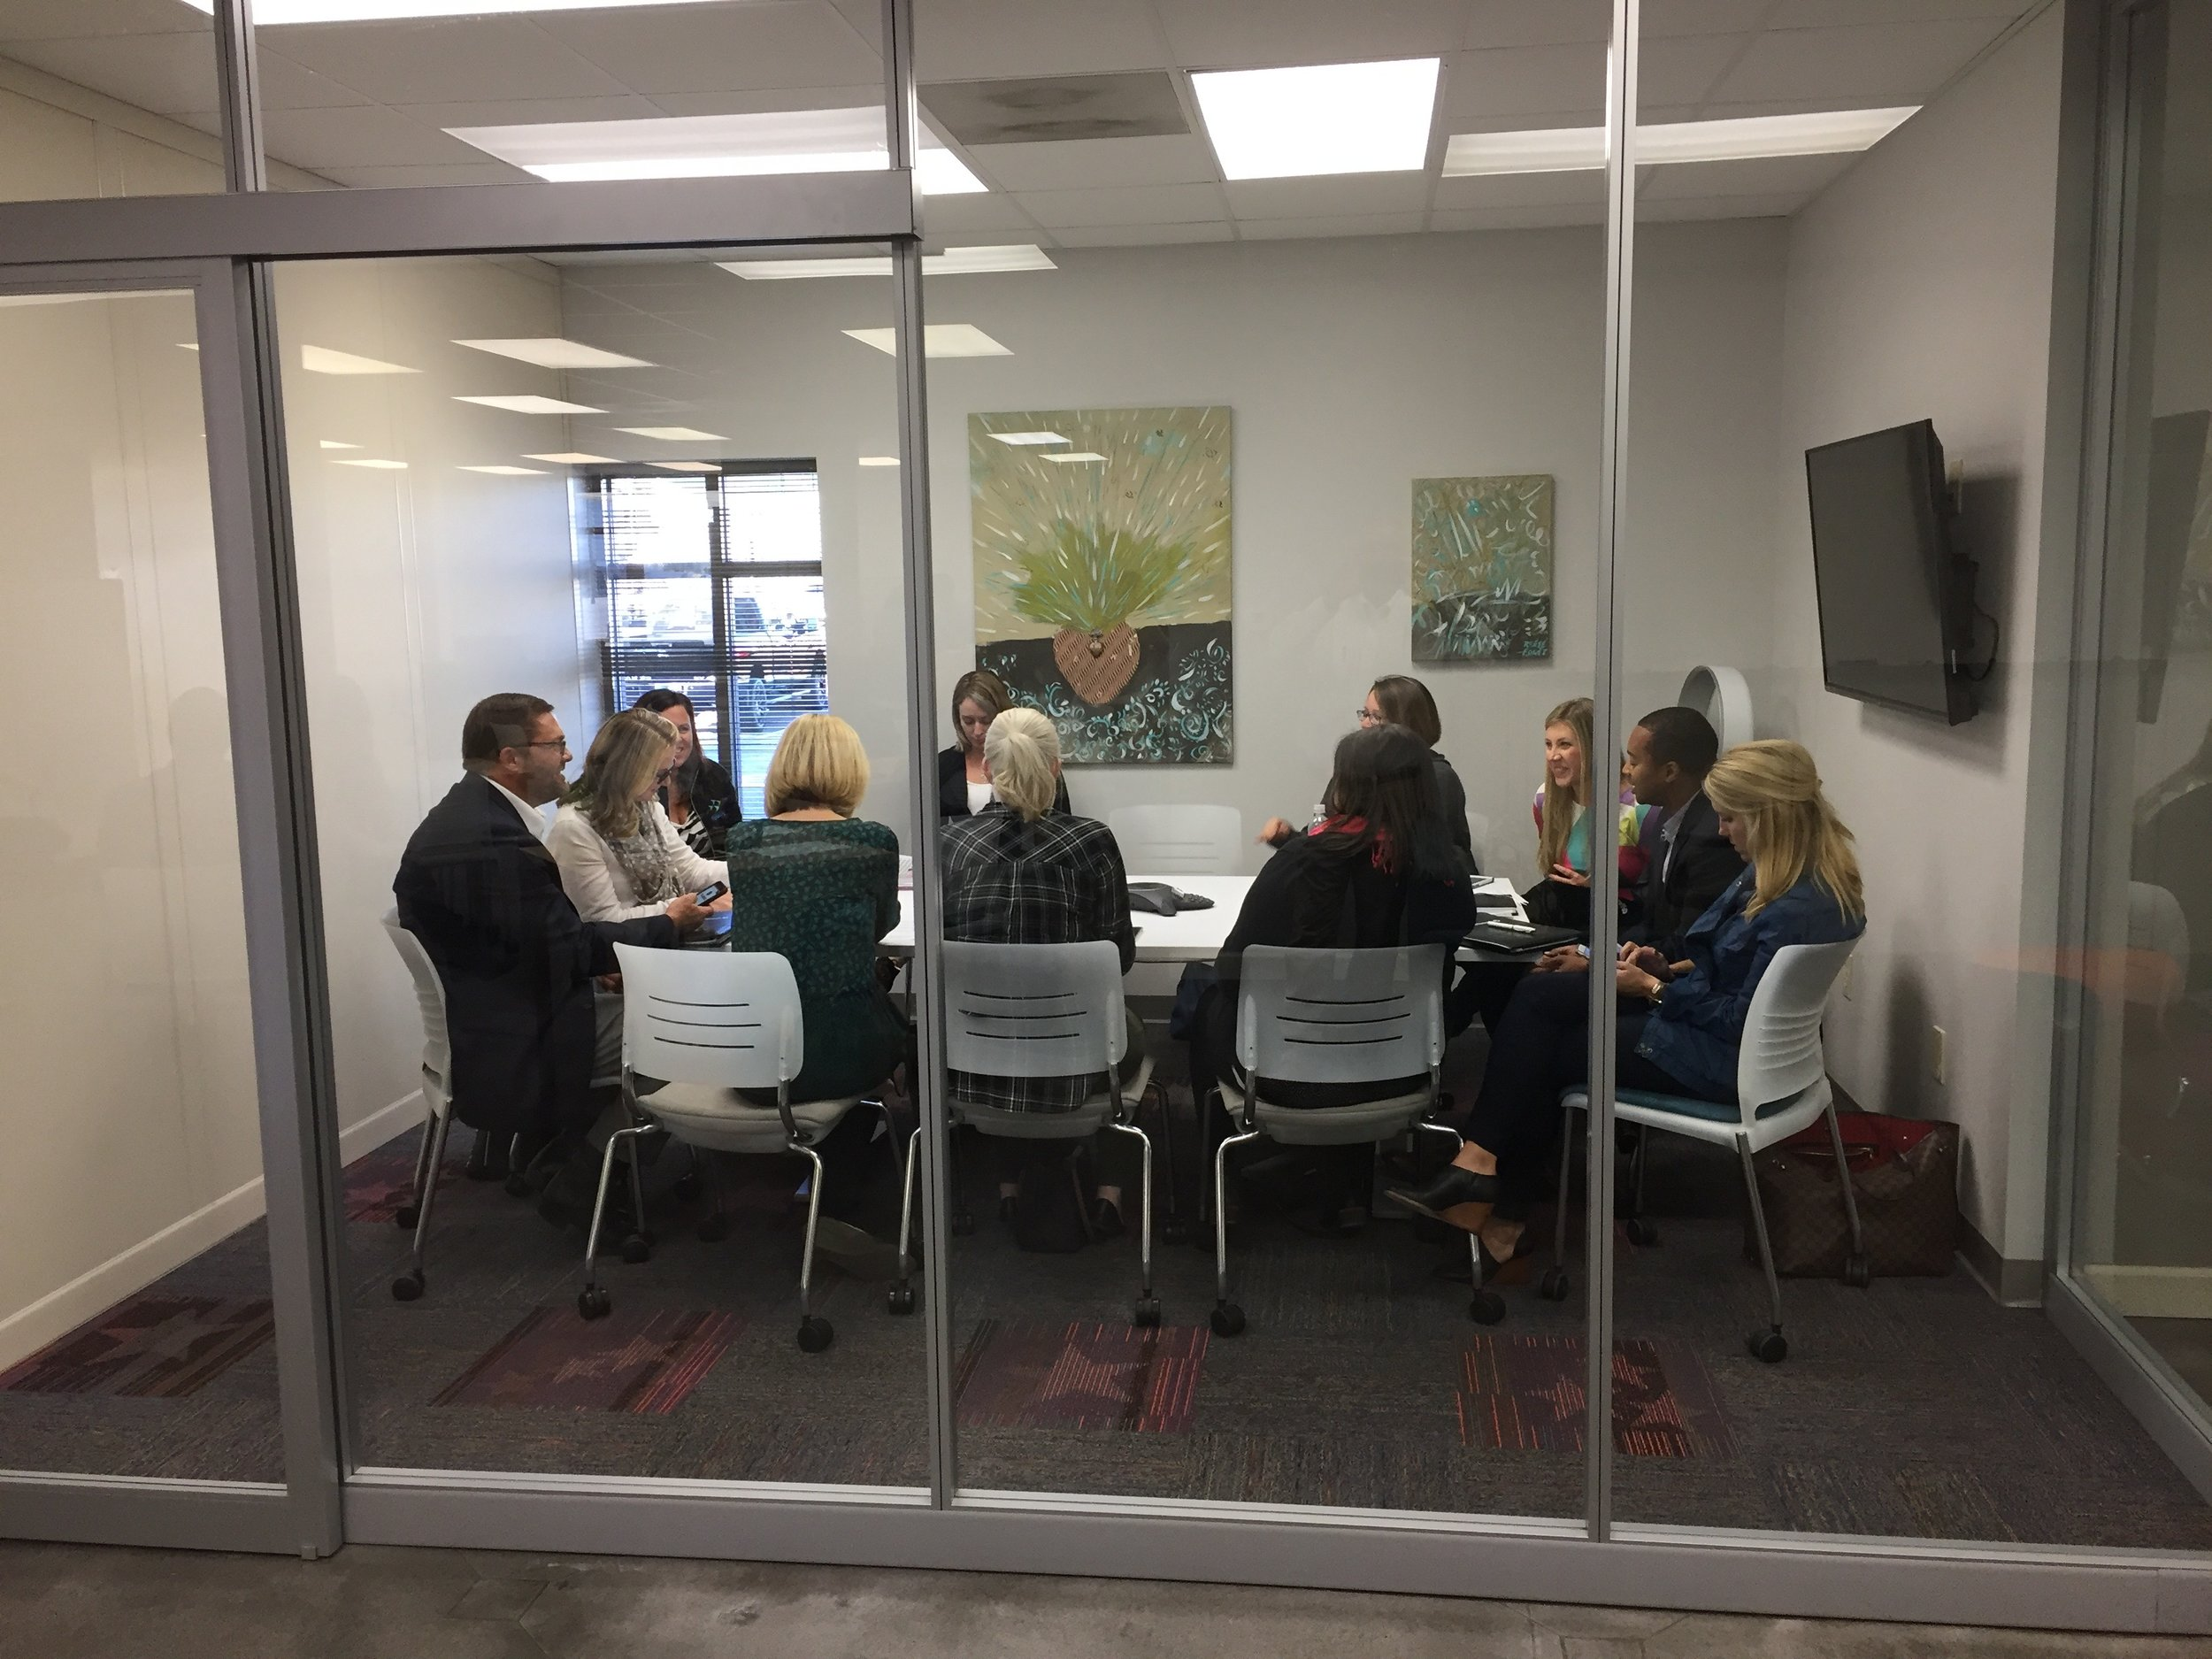 A breakout session in one of our small conference rooms.